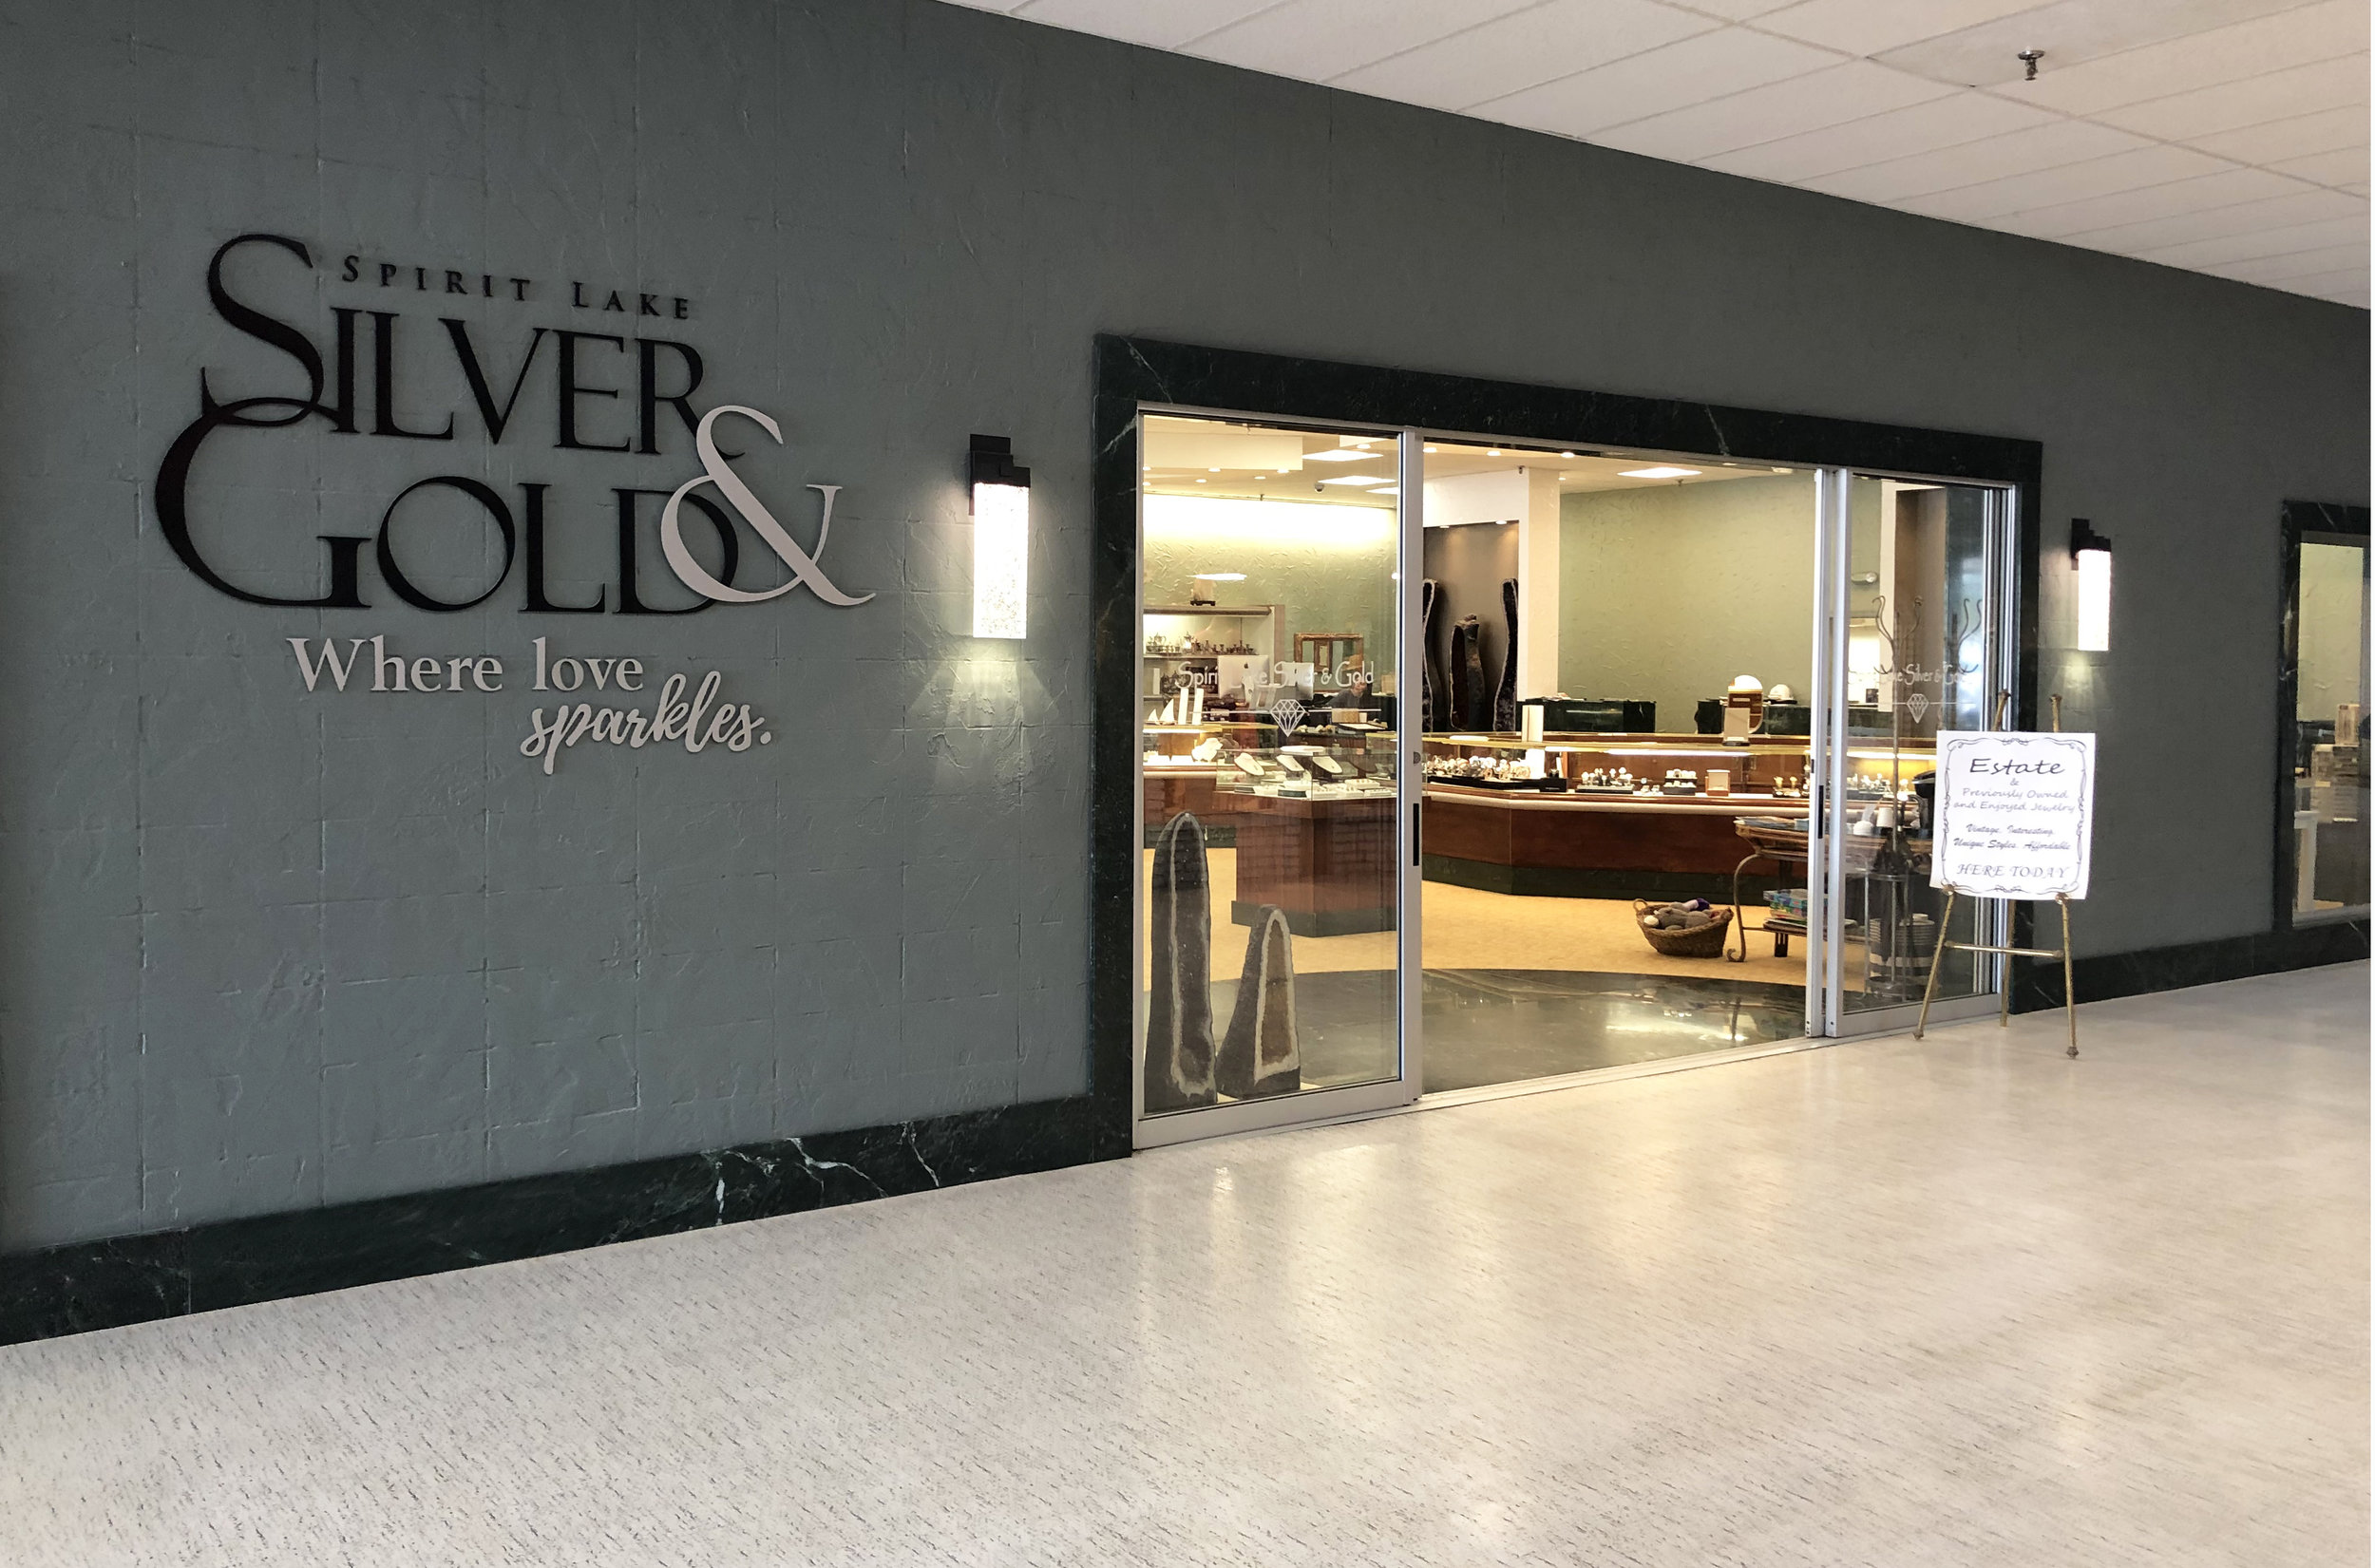 Spirit LakeSilver and Gold: - Largest jewelry store in northwest Iowa. On site jewelers make repairs plus create unique designs just for you. 712-336-5405Visit: www.spiritlakesilverandgold.com